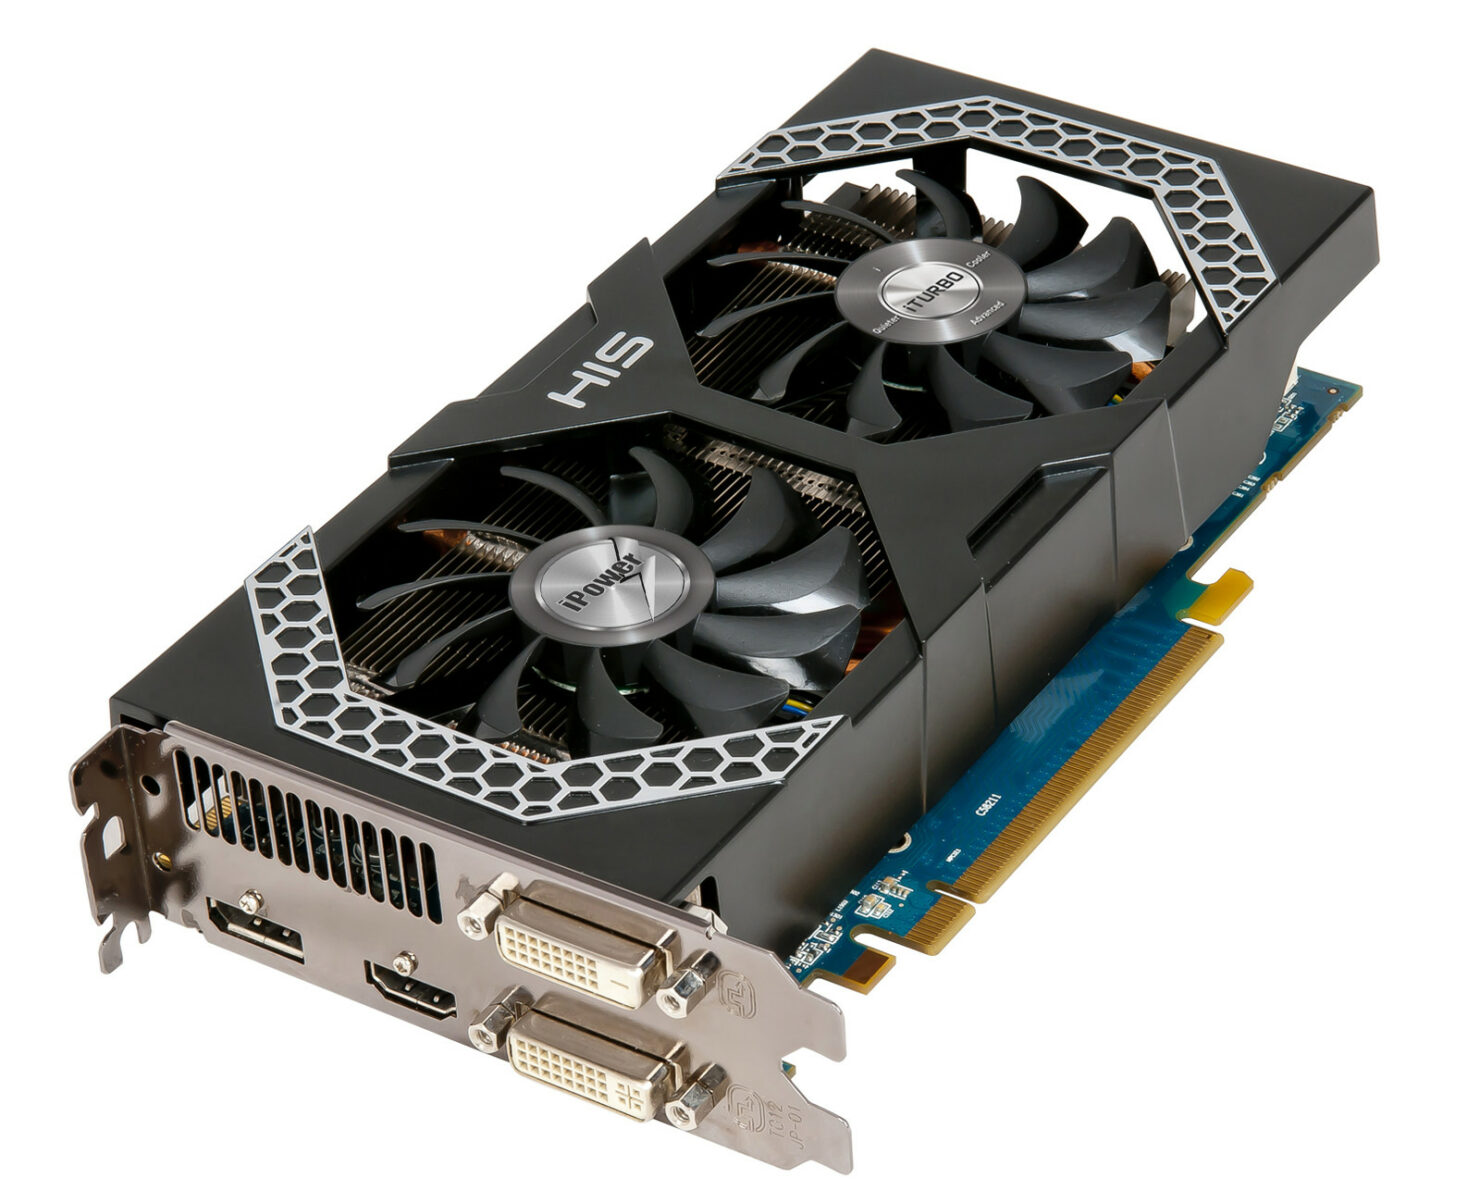 his-r7-260x-ipower-2-gb